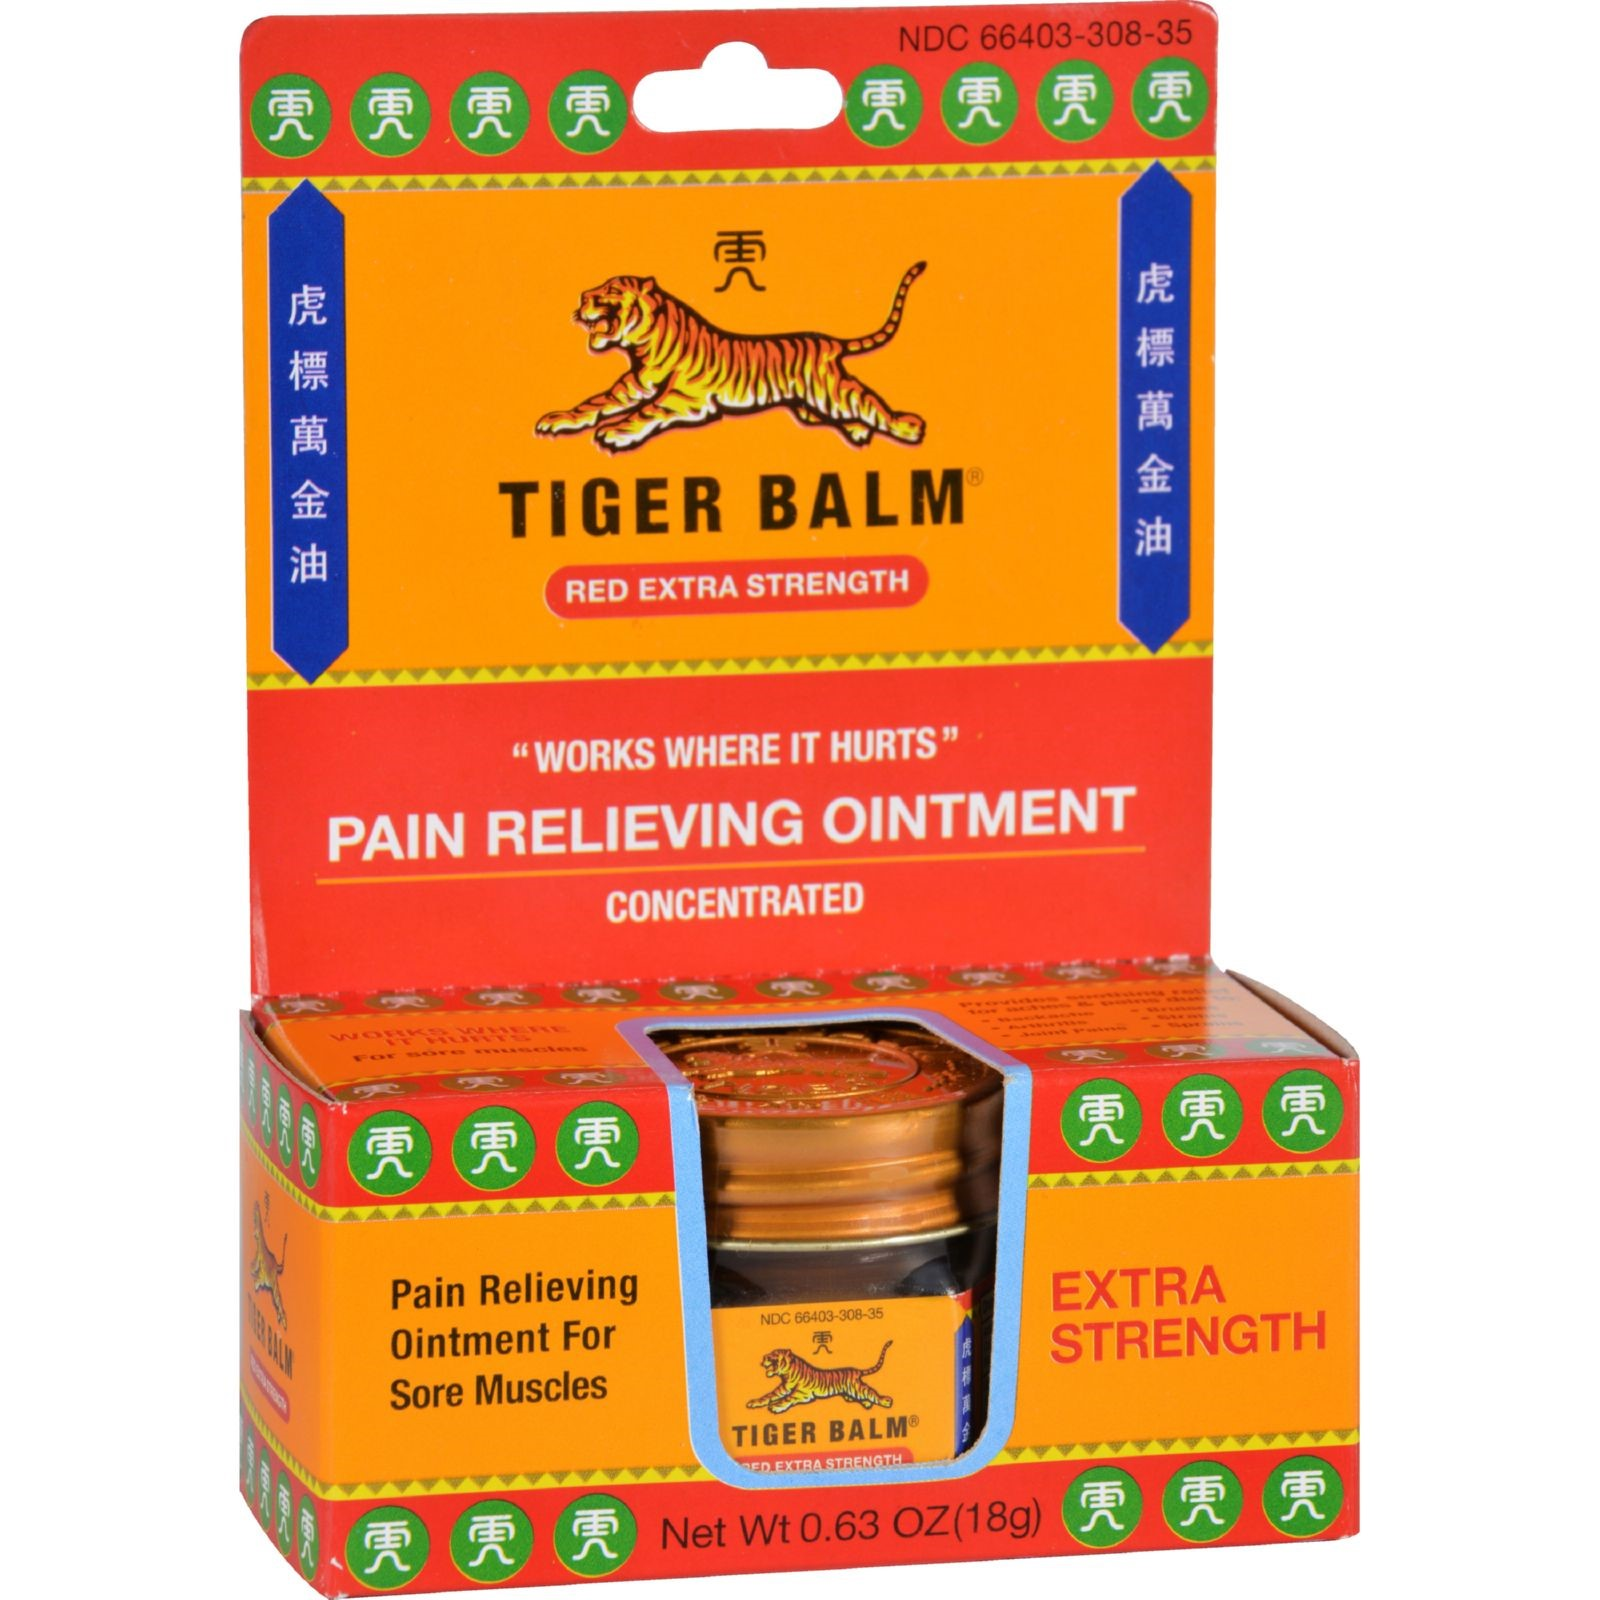 Tiger Balm Extra Strength Pain Relieving Ointment, 0.63 Oz